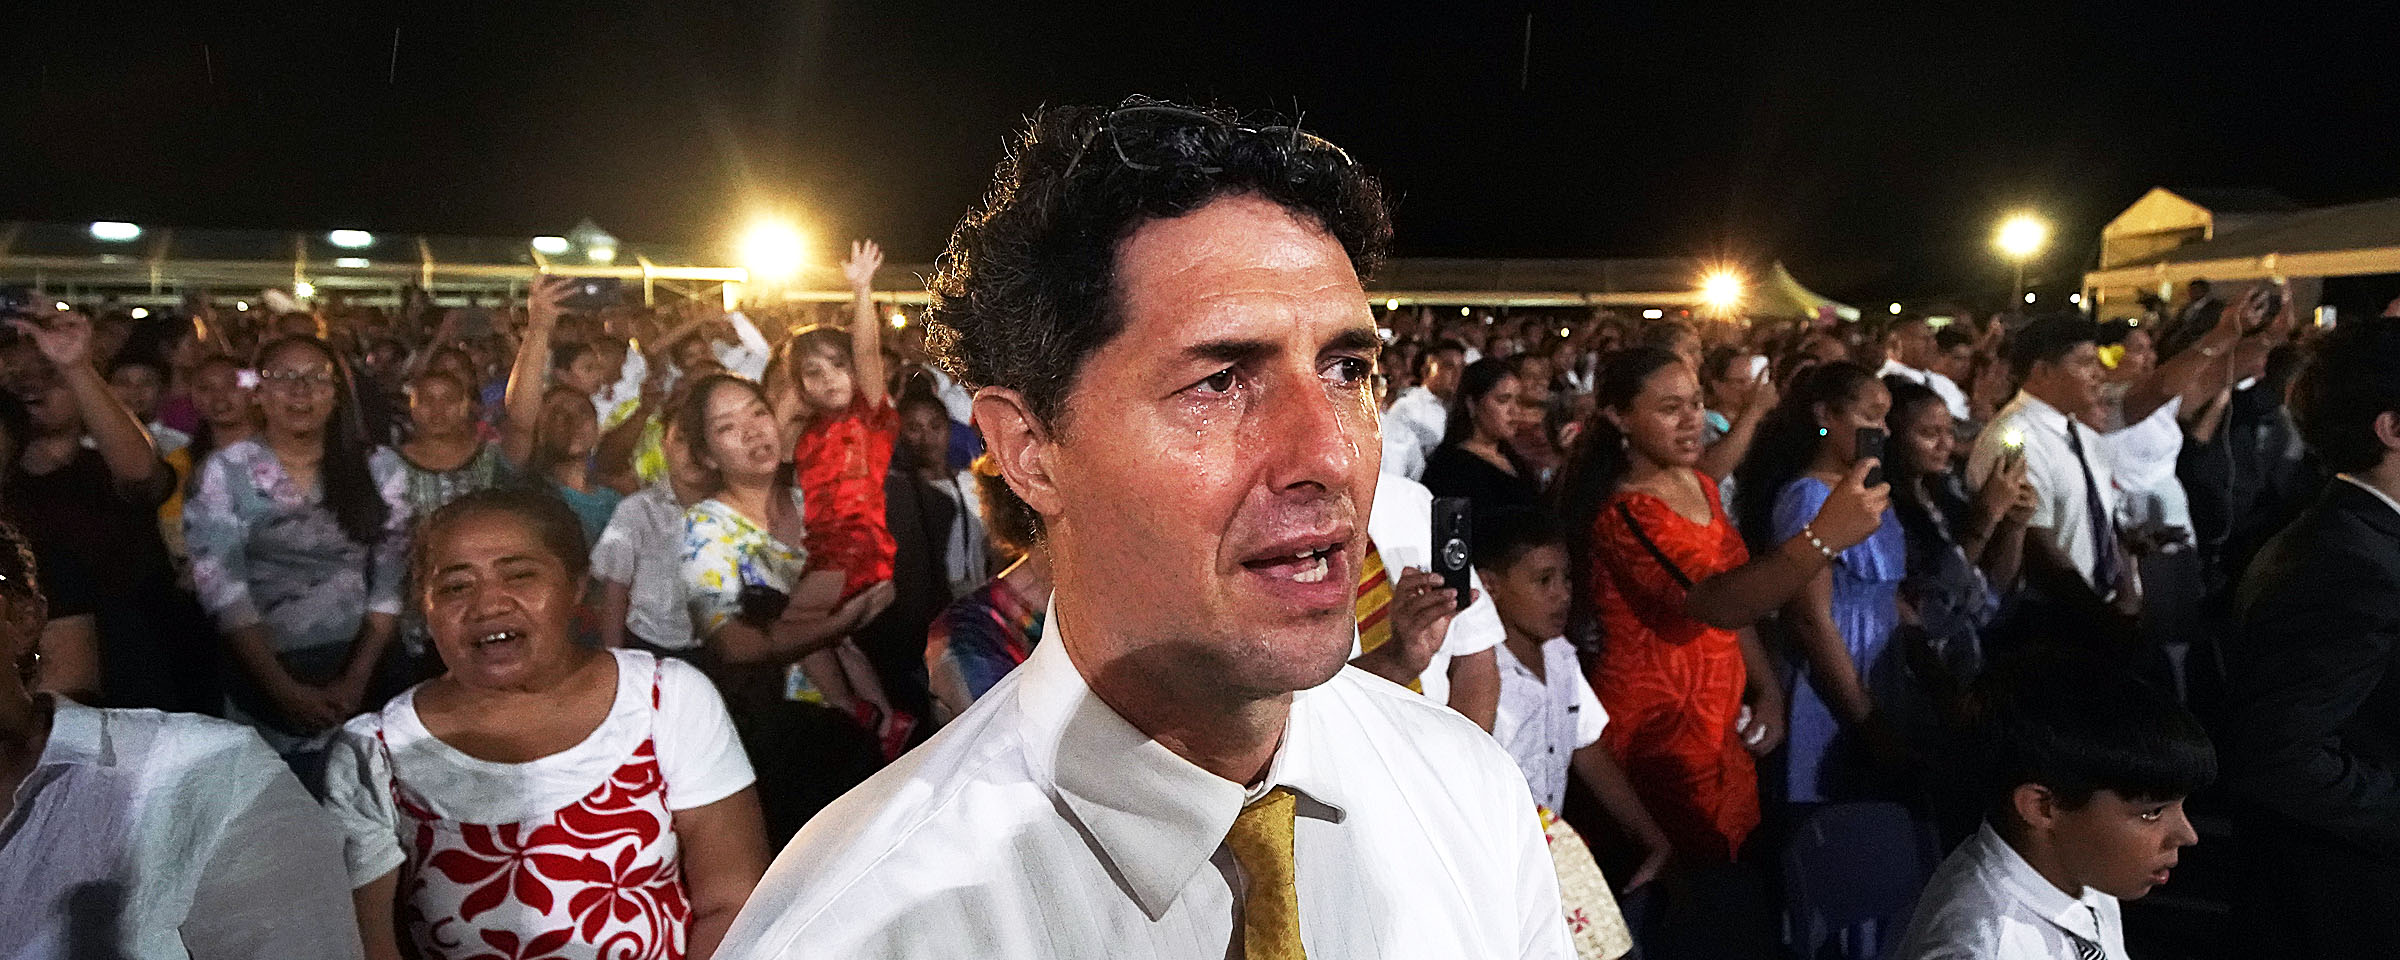 Jason Corry has tears in his eyes as President Russell M. Nelson of The Church of Jesus Christ of Latter-day Saints leaves following a devotional in Apia, Samoa, on Saturday, May 18, 2019. Many in attendance sang and returned waves from President Nelson and his wife, Sister Wendy Nelson.